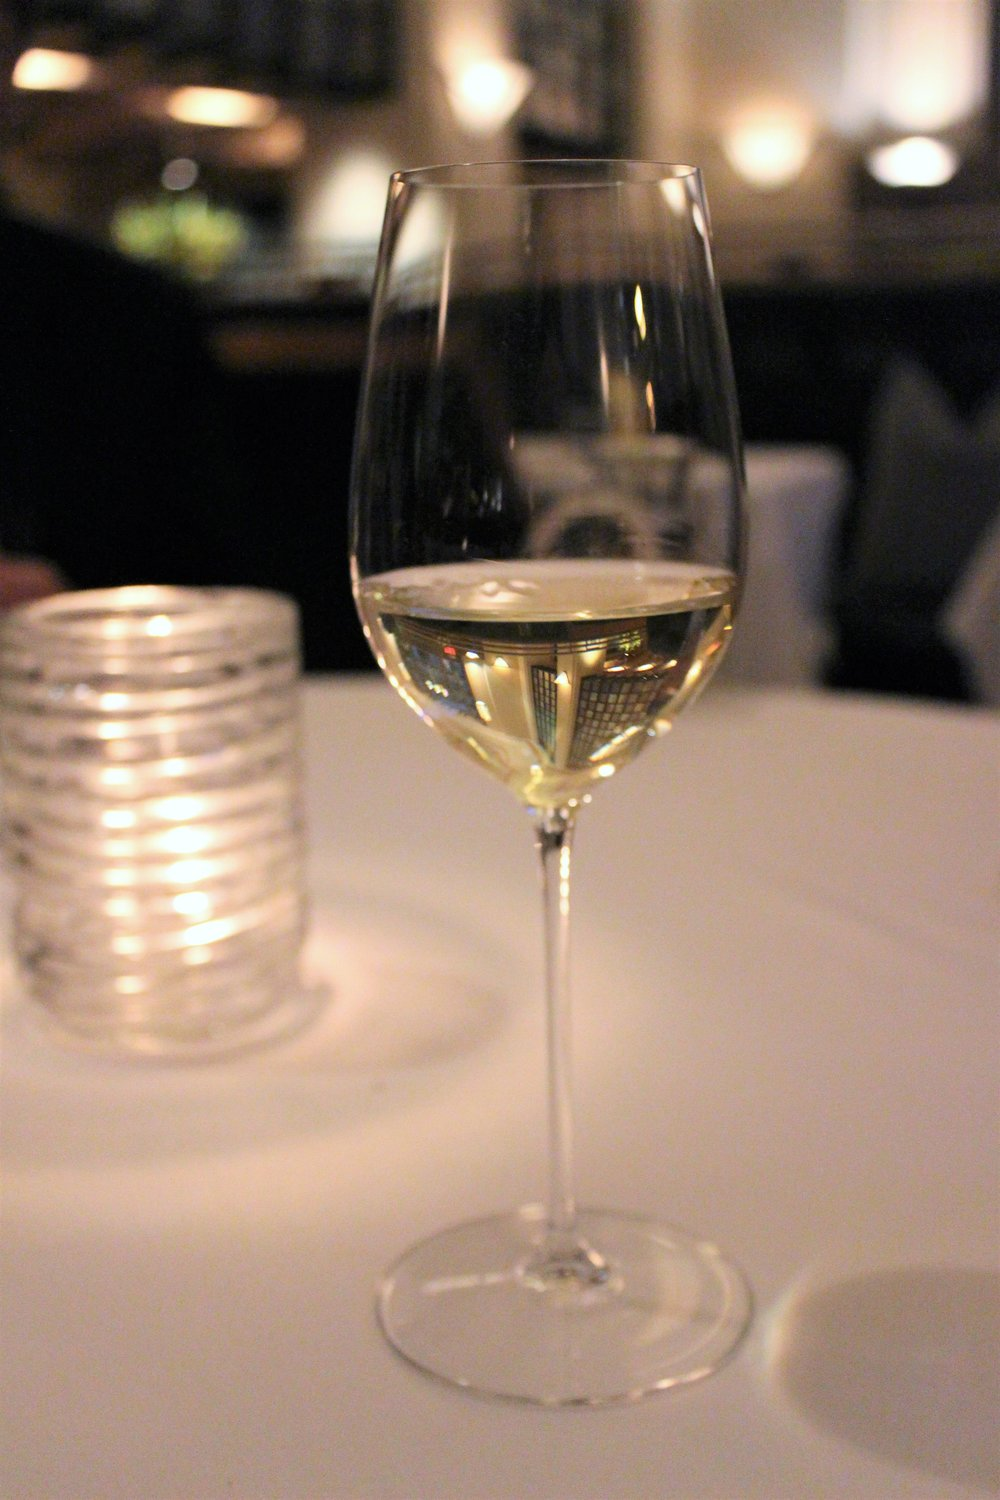 Empire-Estate-Riesling-Finger-Lakes-New-York-2015-at-Eleven-Madison-Park.JPG